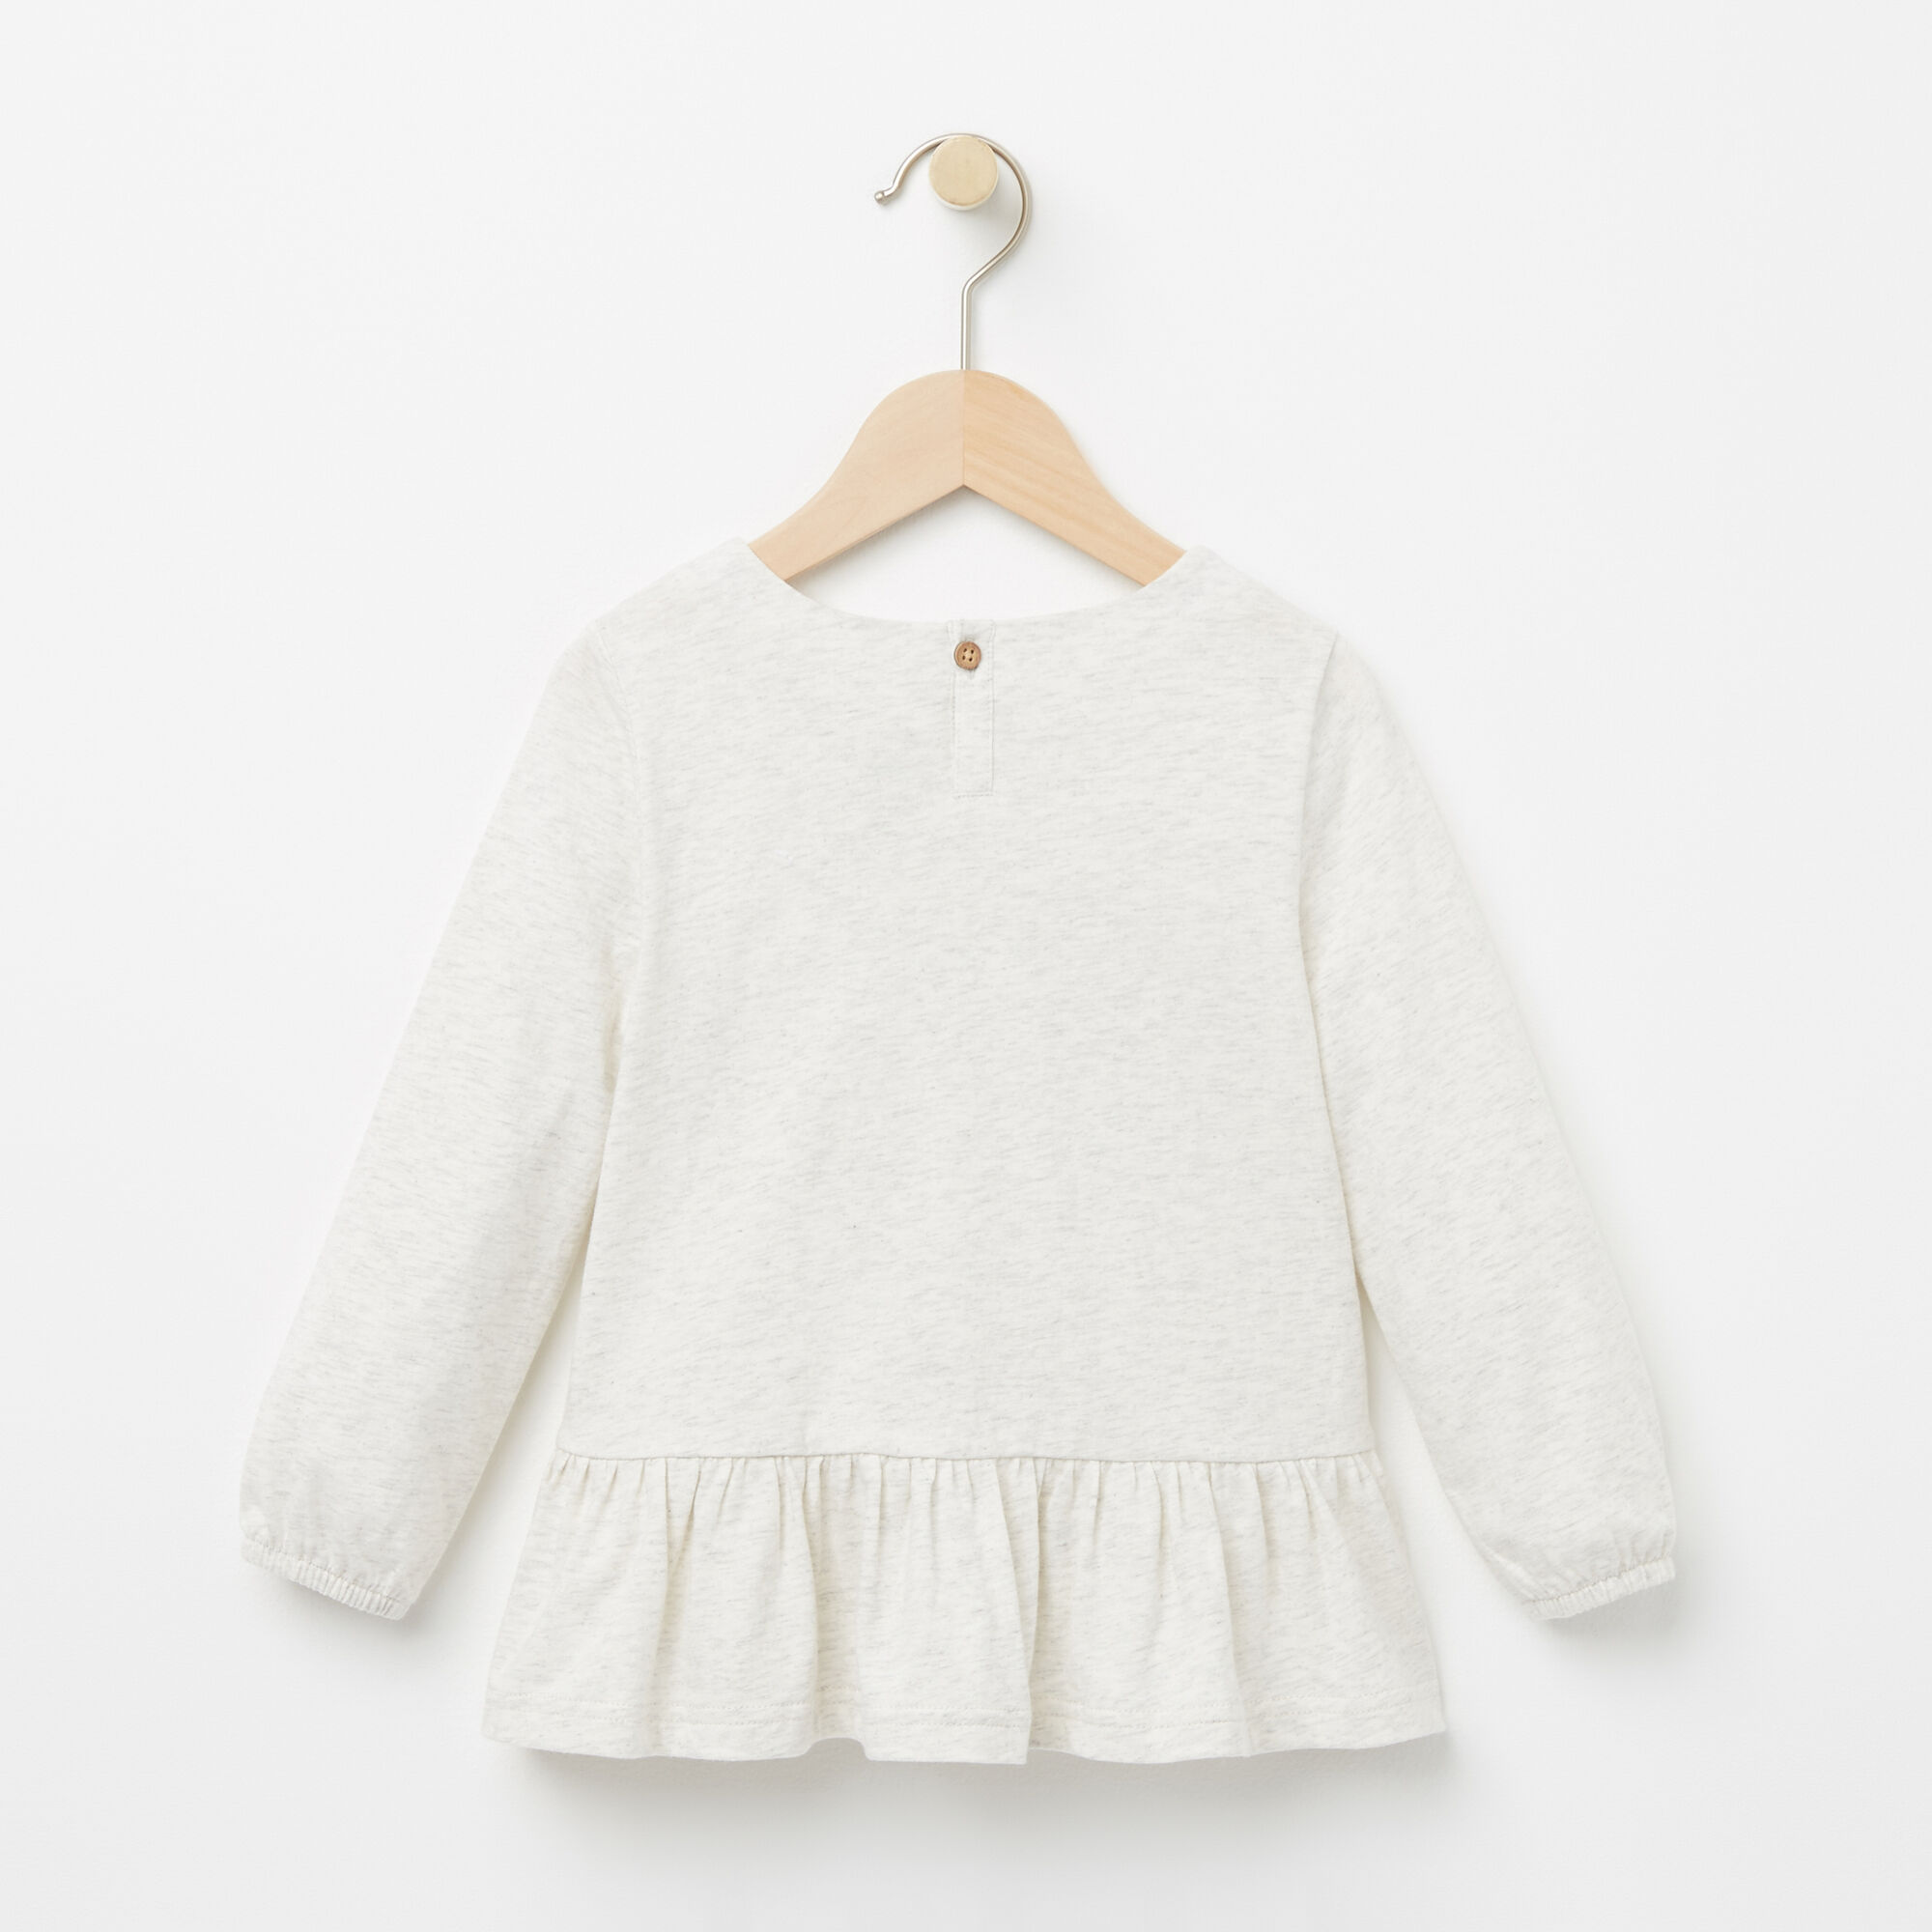 Toddler Aster Top